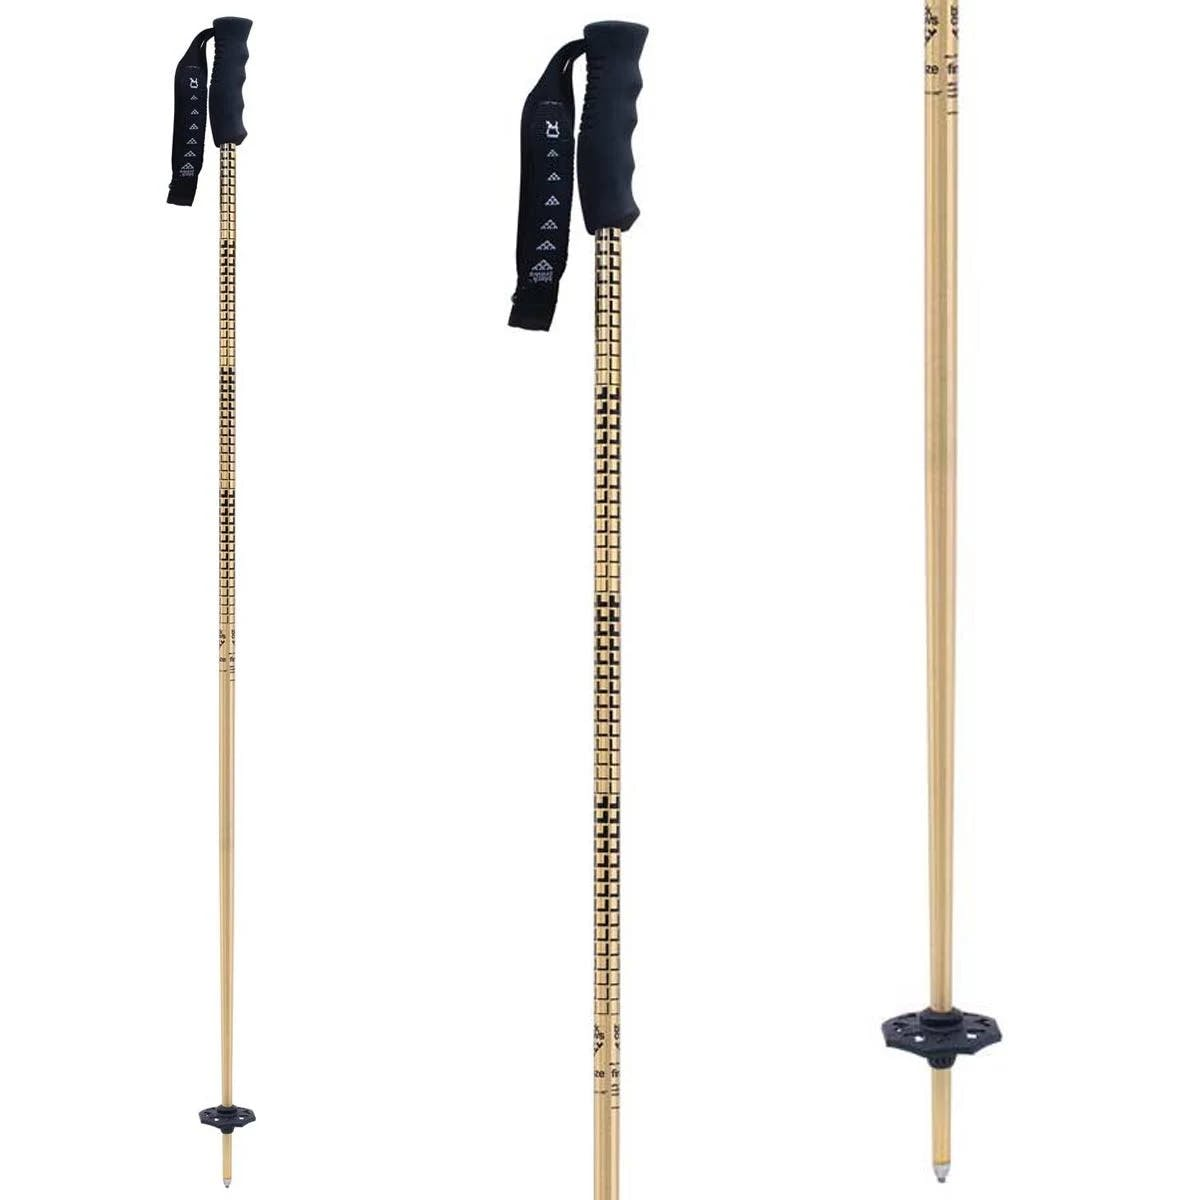 Black Crows Firmo Ski Poles Gold 48